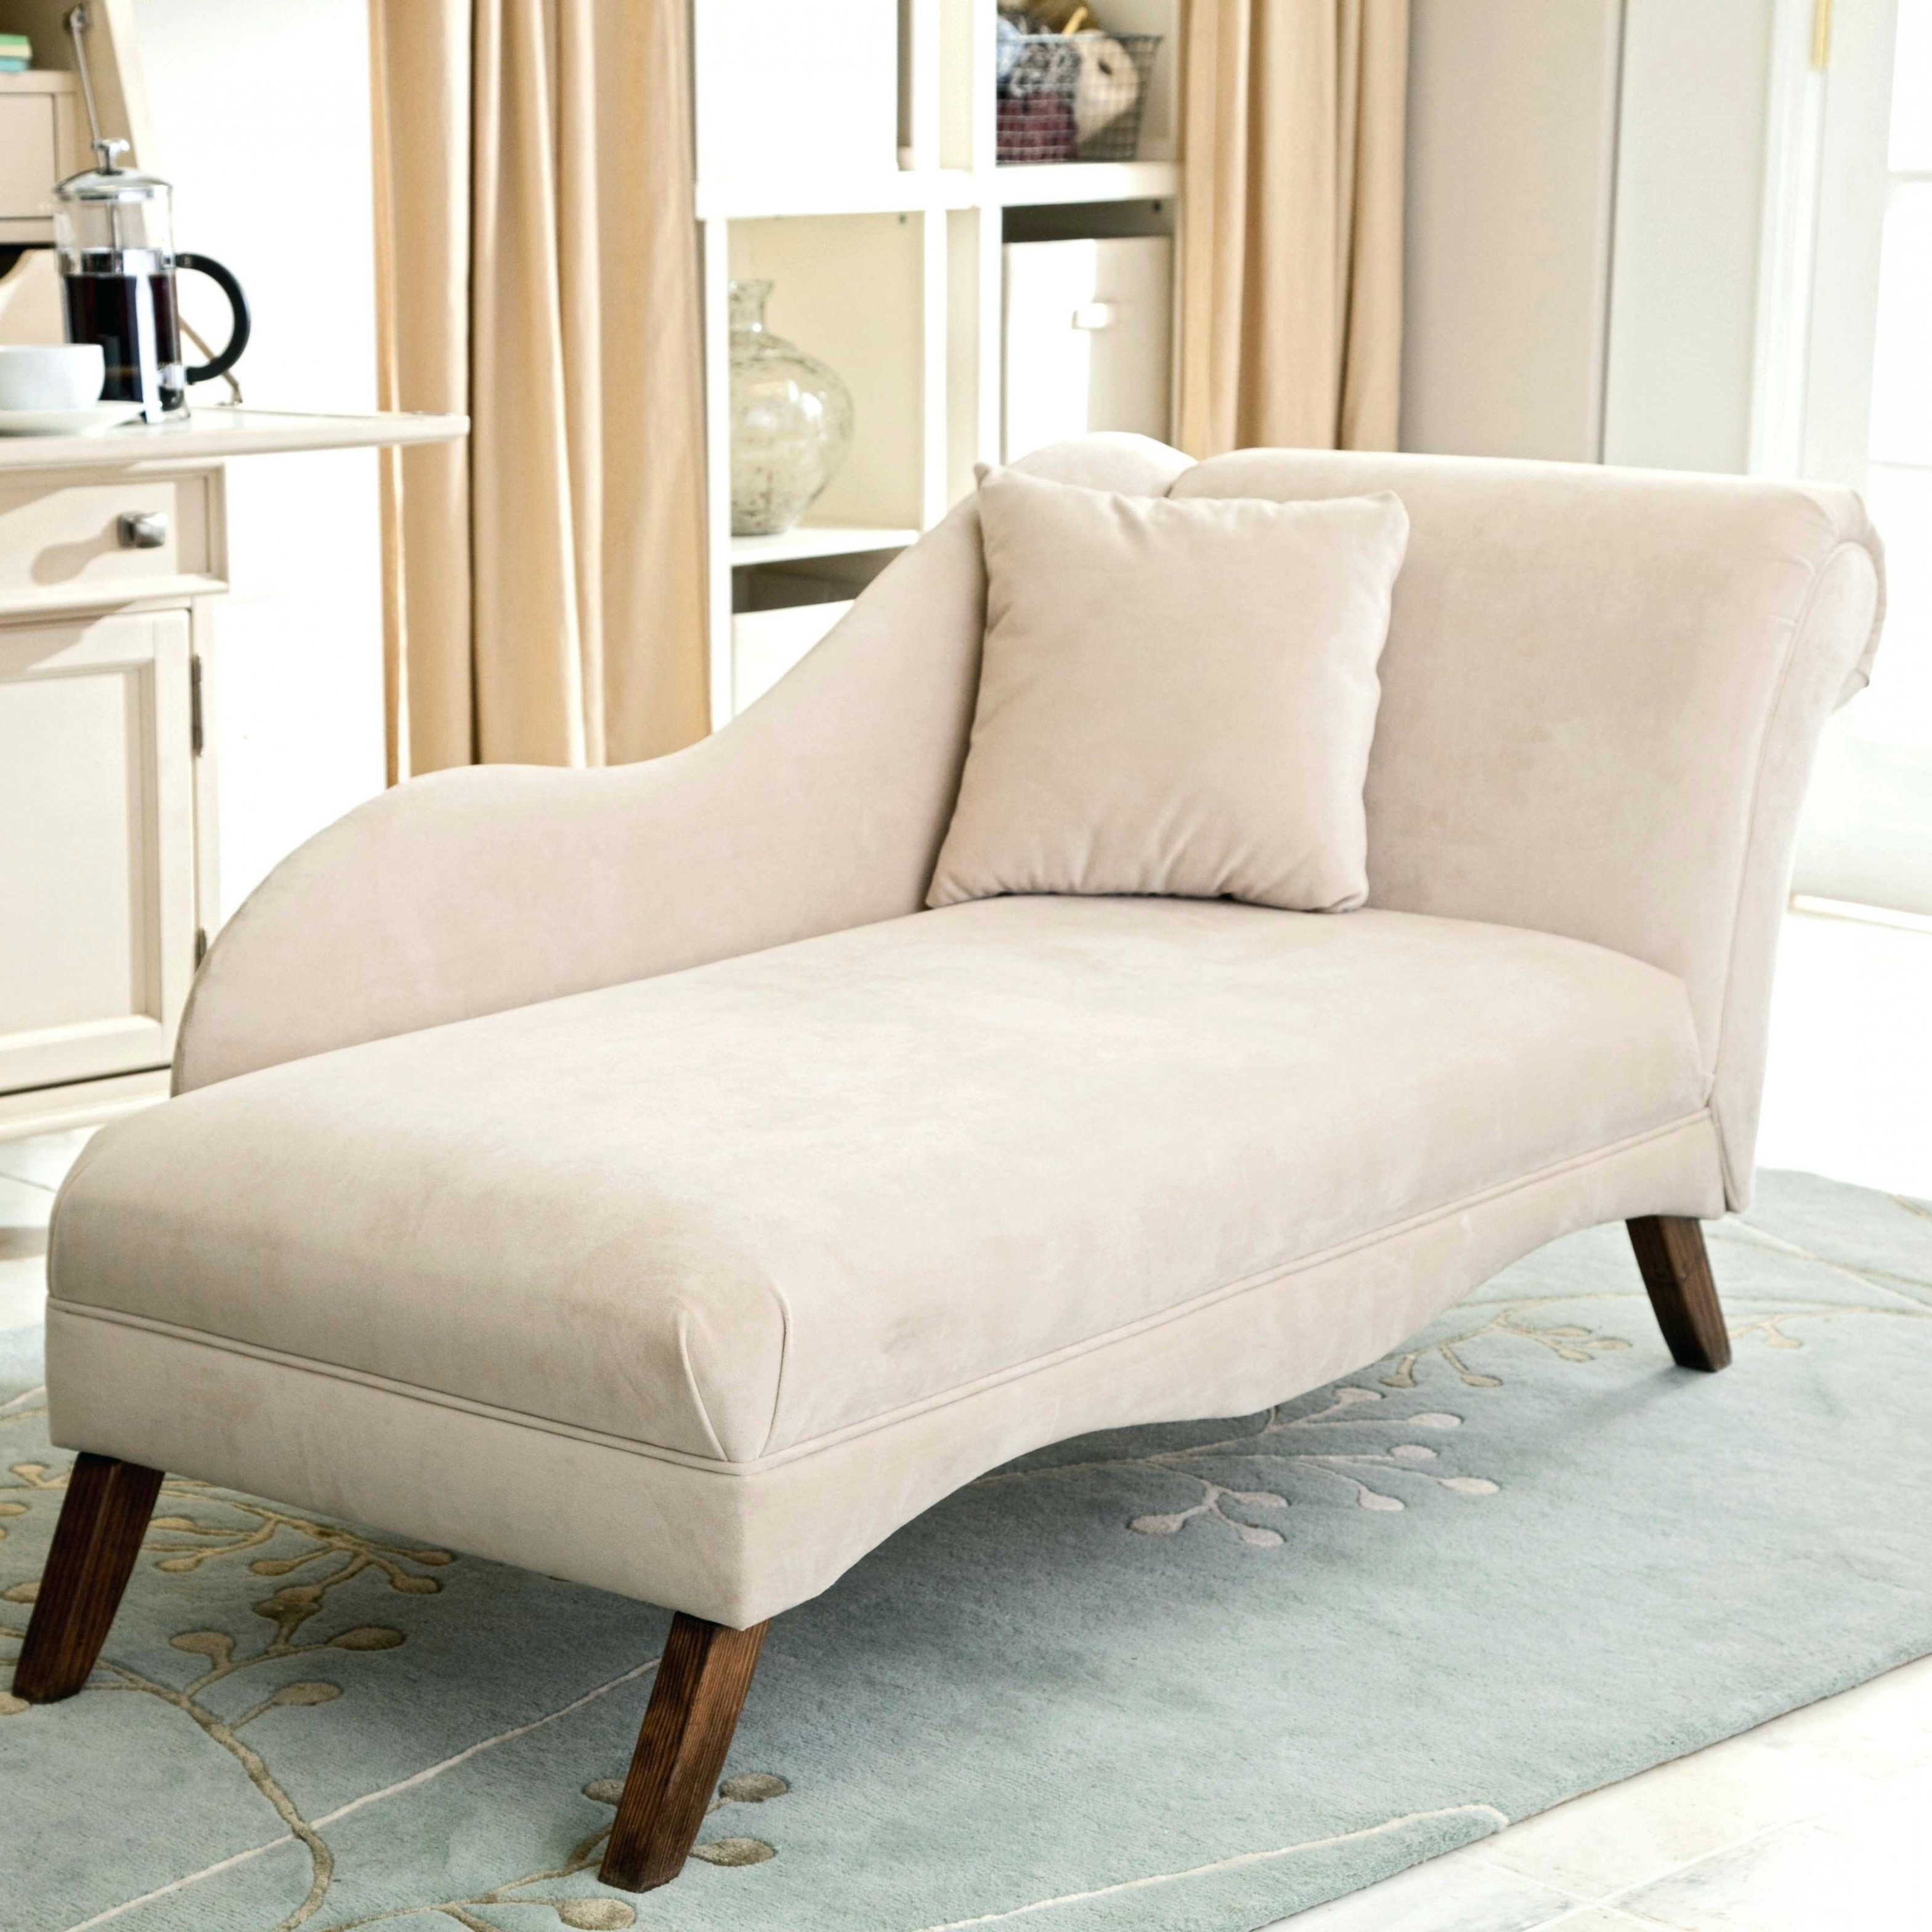 Most Recently Released Small Chaise Lounge Chairs For Bedroom Within Home Decor: Small Chaise Lounge Chairs For Bedroom French Style (View 2 of 15)